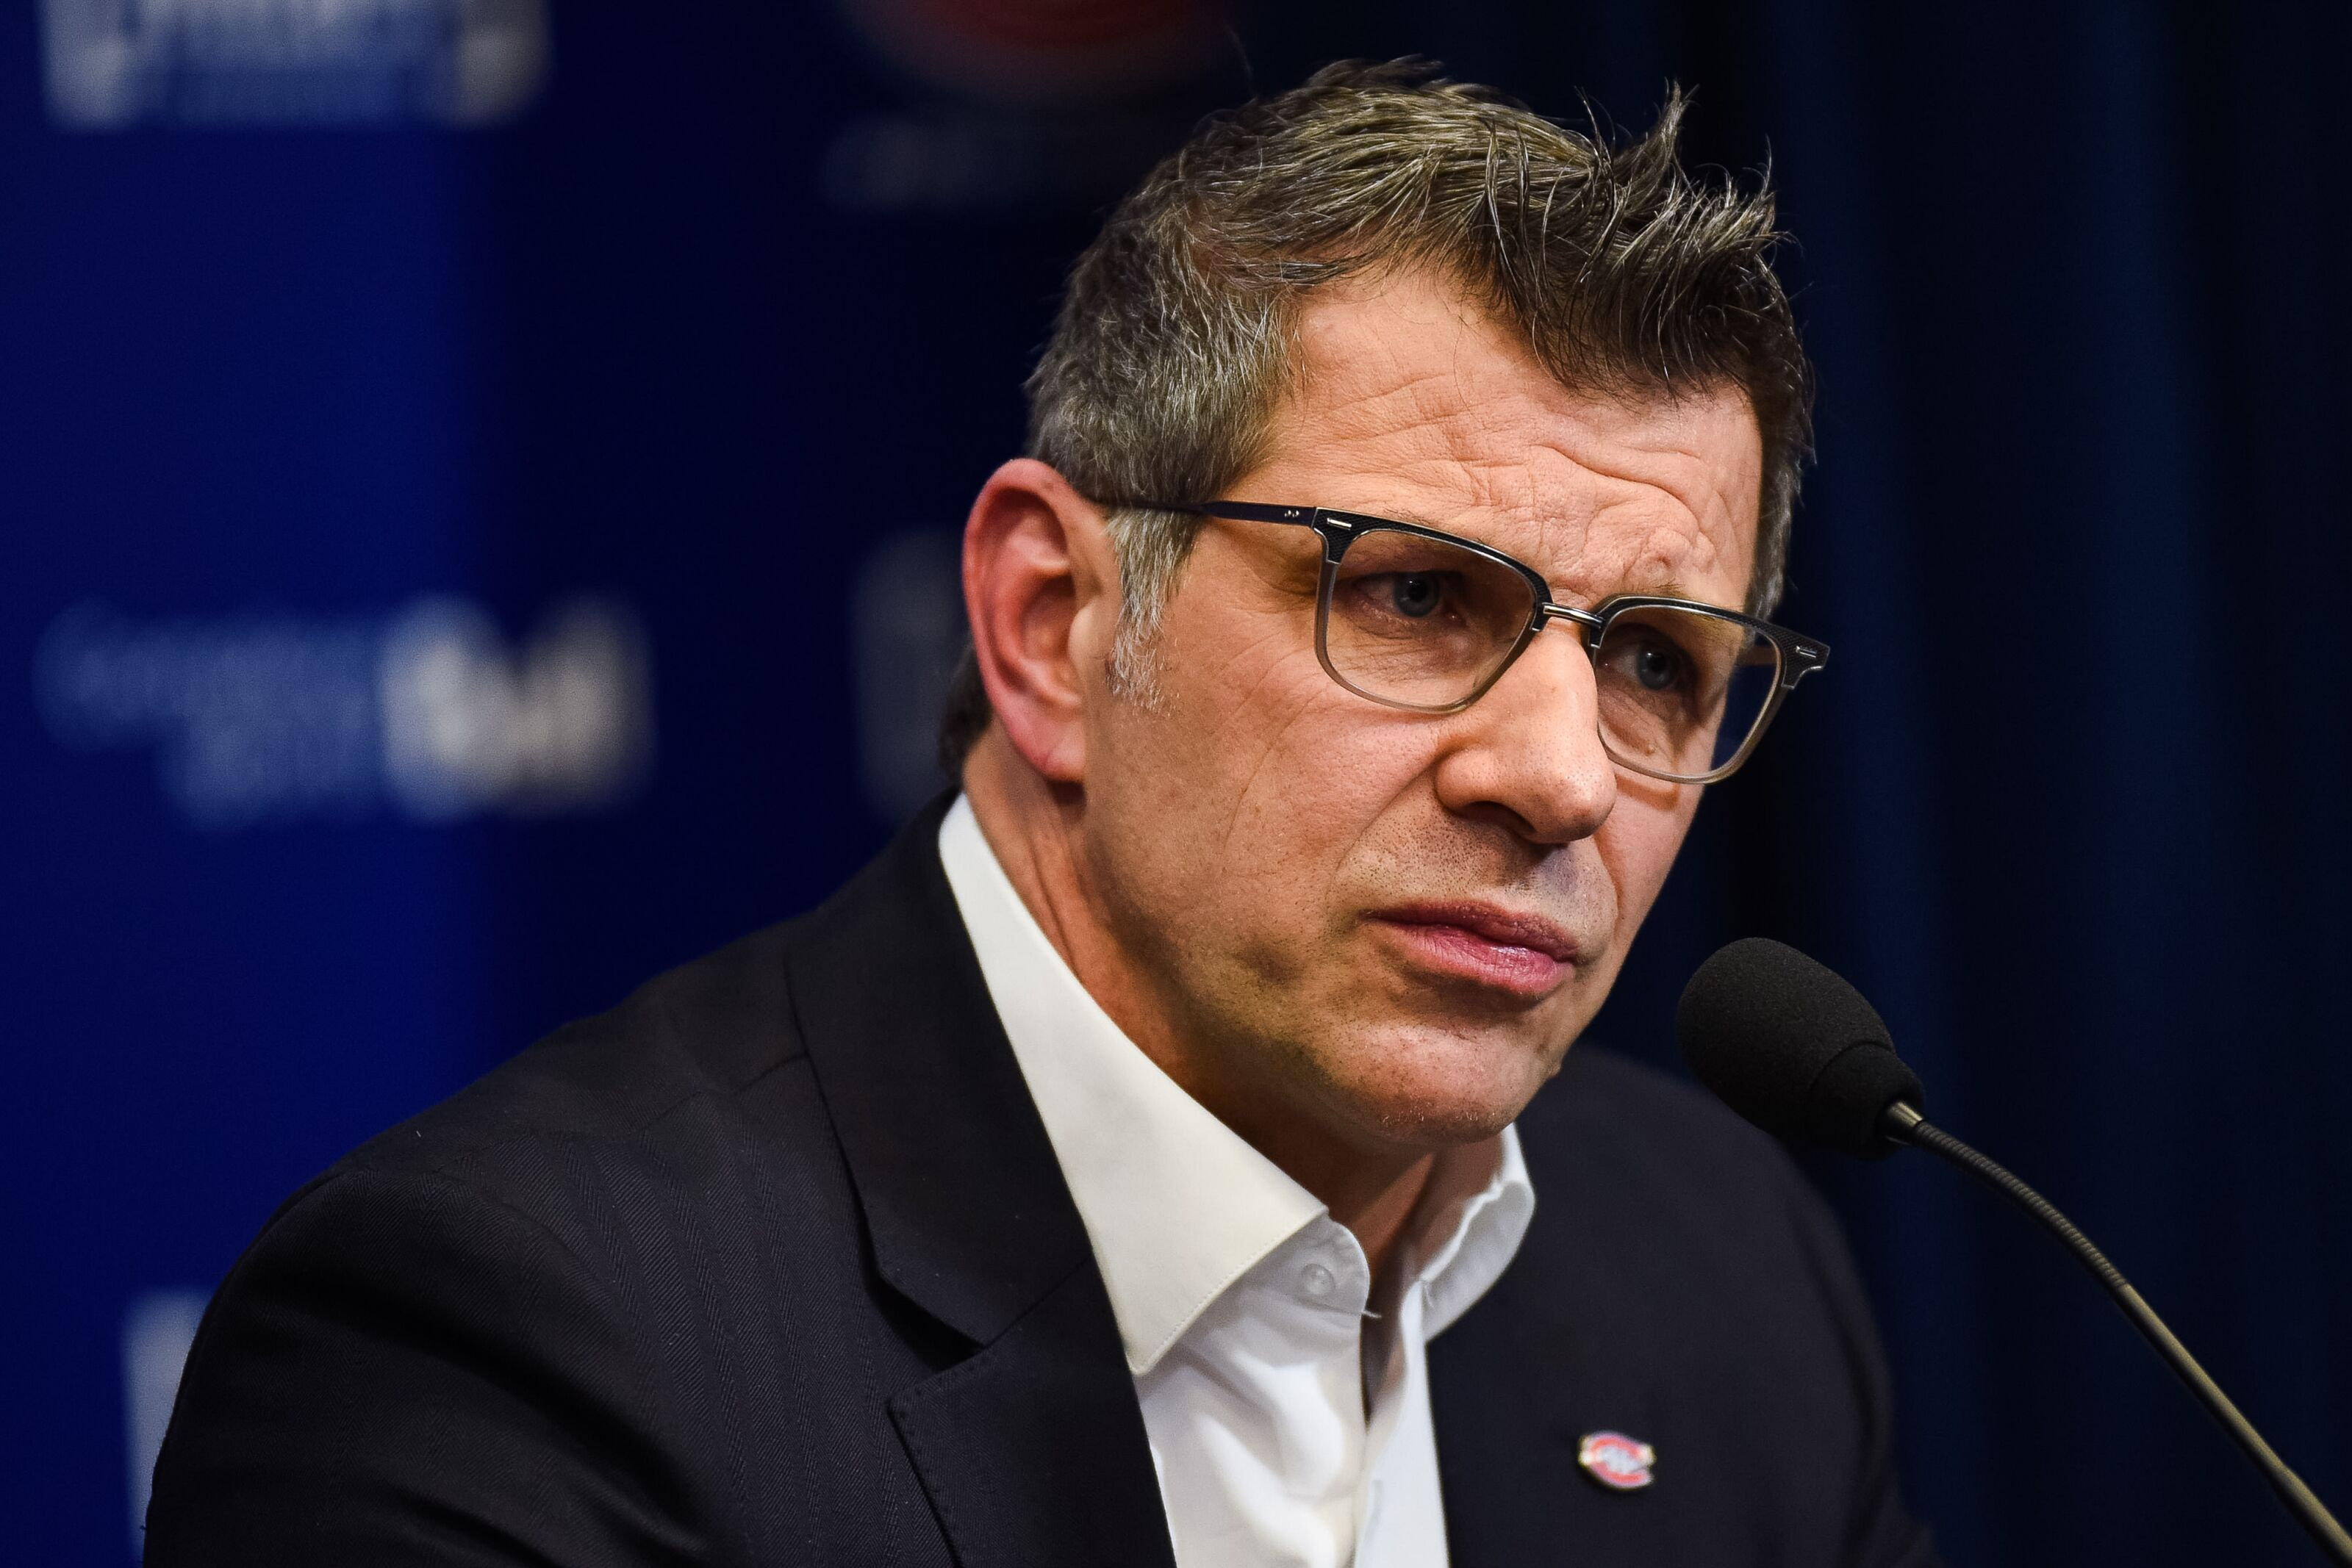 943922538-nhl-apr-9-montreal-canadiens-end-of-season-press-conference.jpg